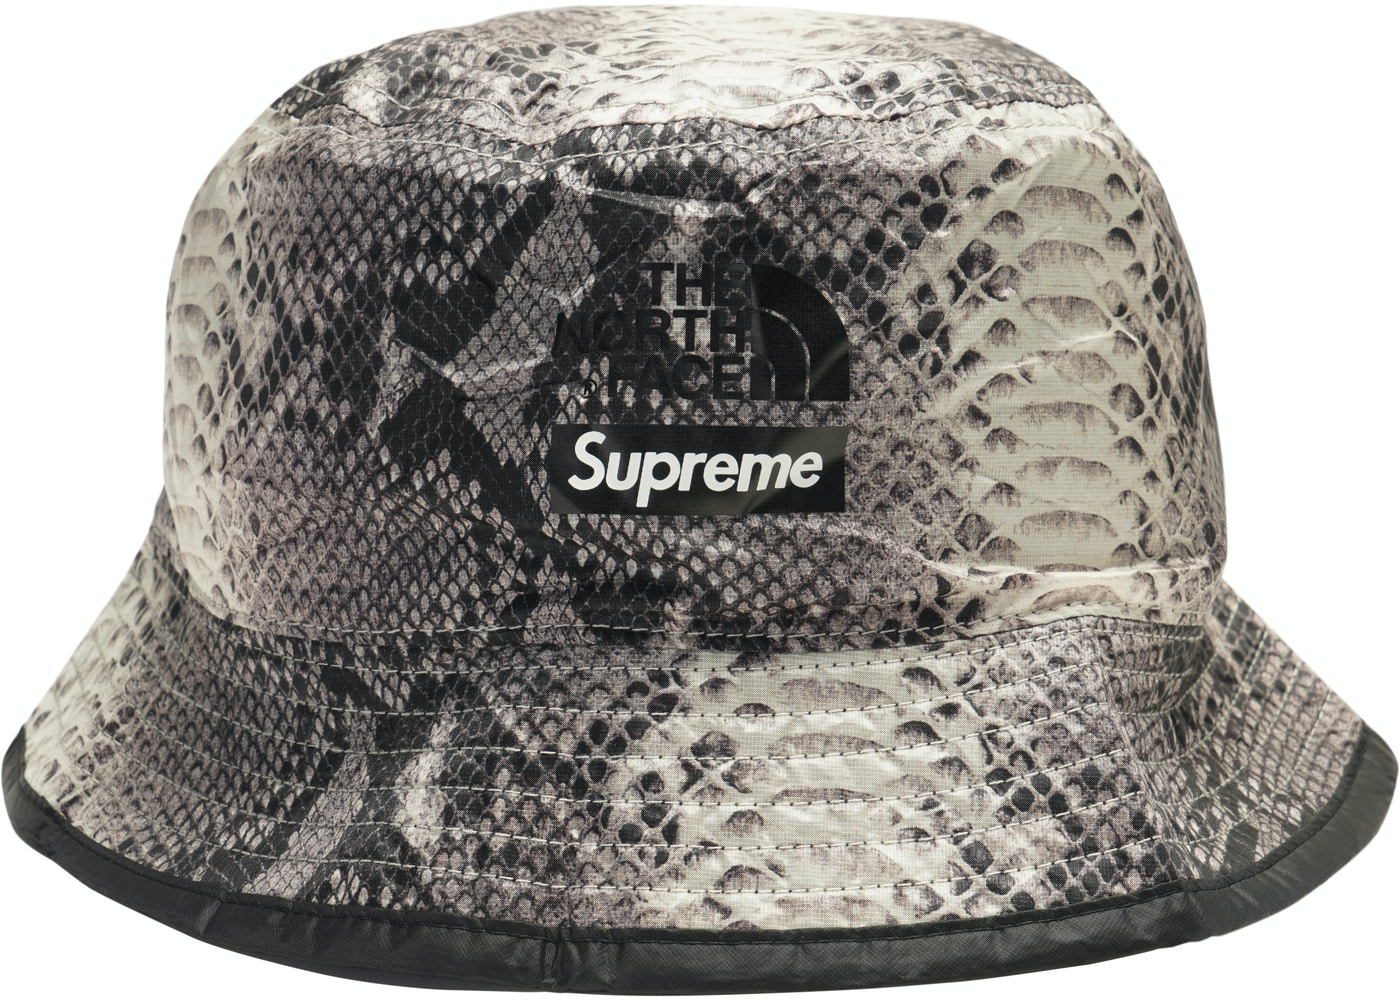 9f78e3b0 Streetwear - Supreme Headwear - Total Sold